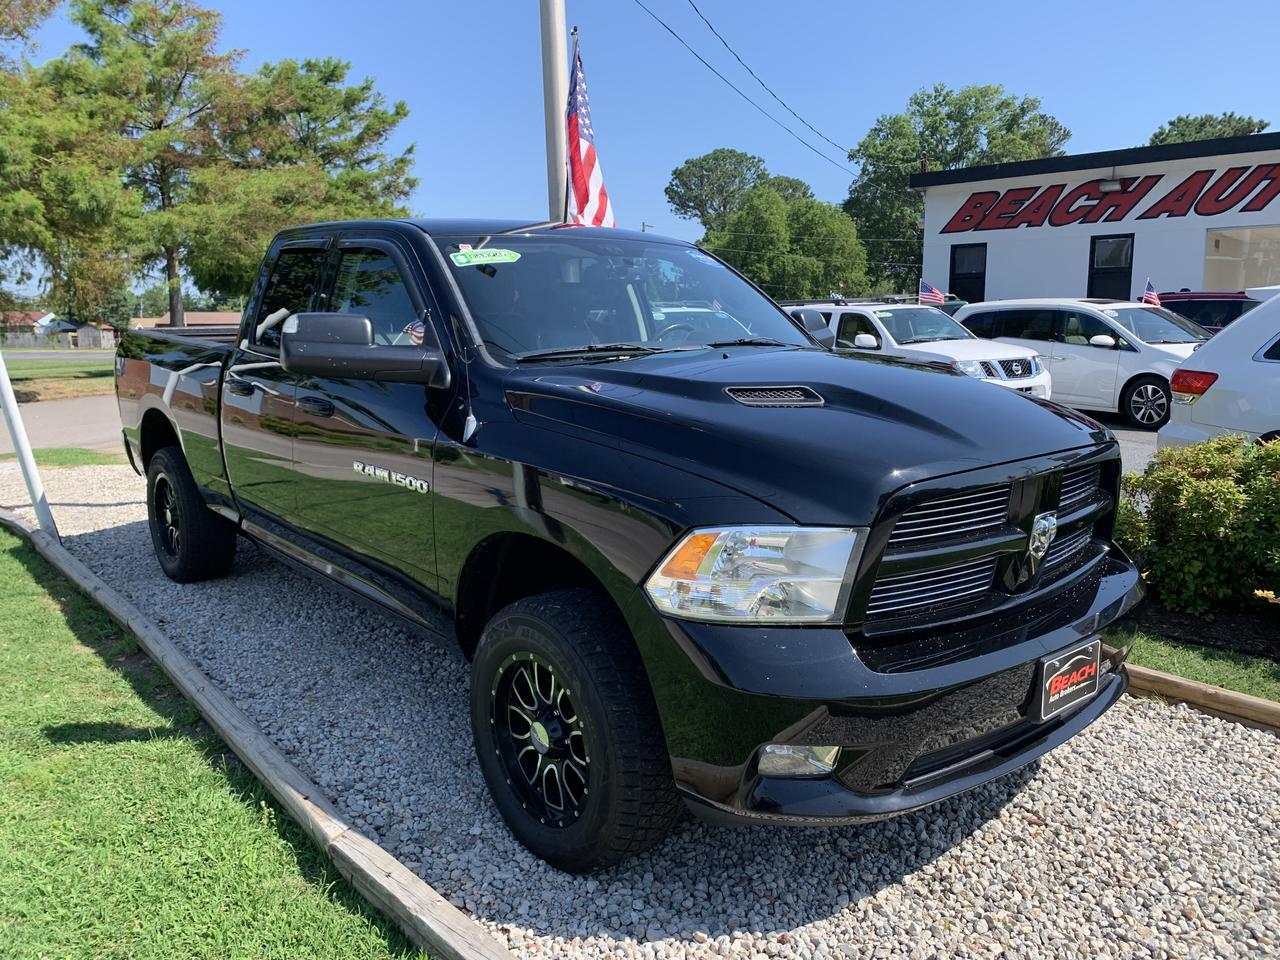 2012 DODGE RAM 1500 SPORT QUAD CAB 4X4, WARRANTY, BACKUP CAM, PARKING SENSORS, HEATED FRONT SEATS, SUNROOF! Norfolk VA